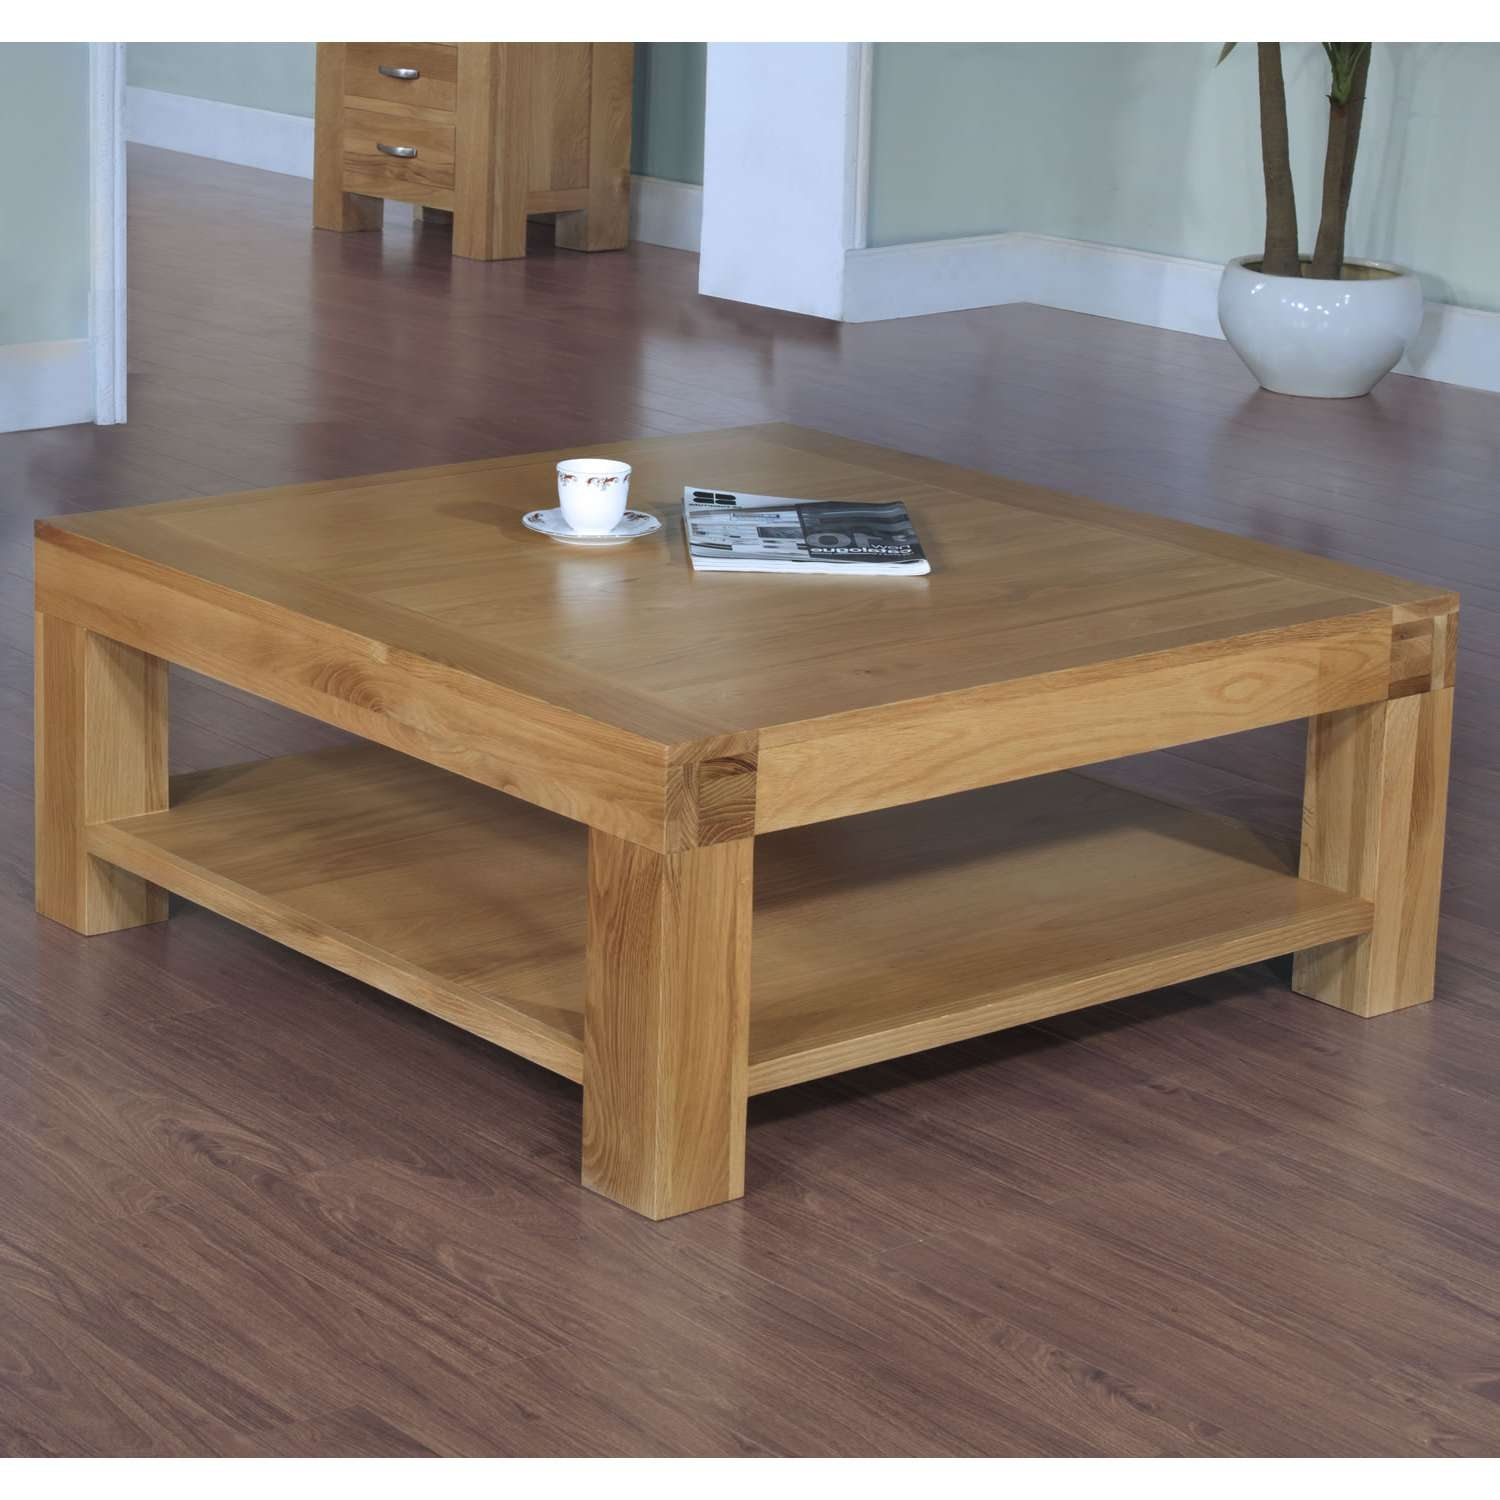 Coffee Table : Modern Coffee Tables Coffee Table With Storage Ikea For Best And Newest Square Coffee Tables With Storage (View 11 of 20)